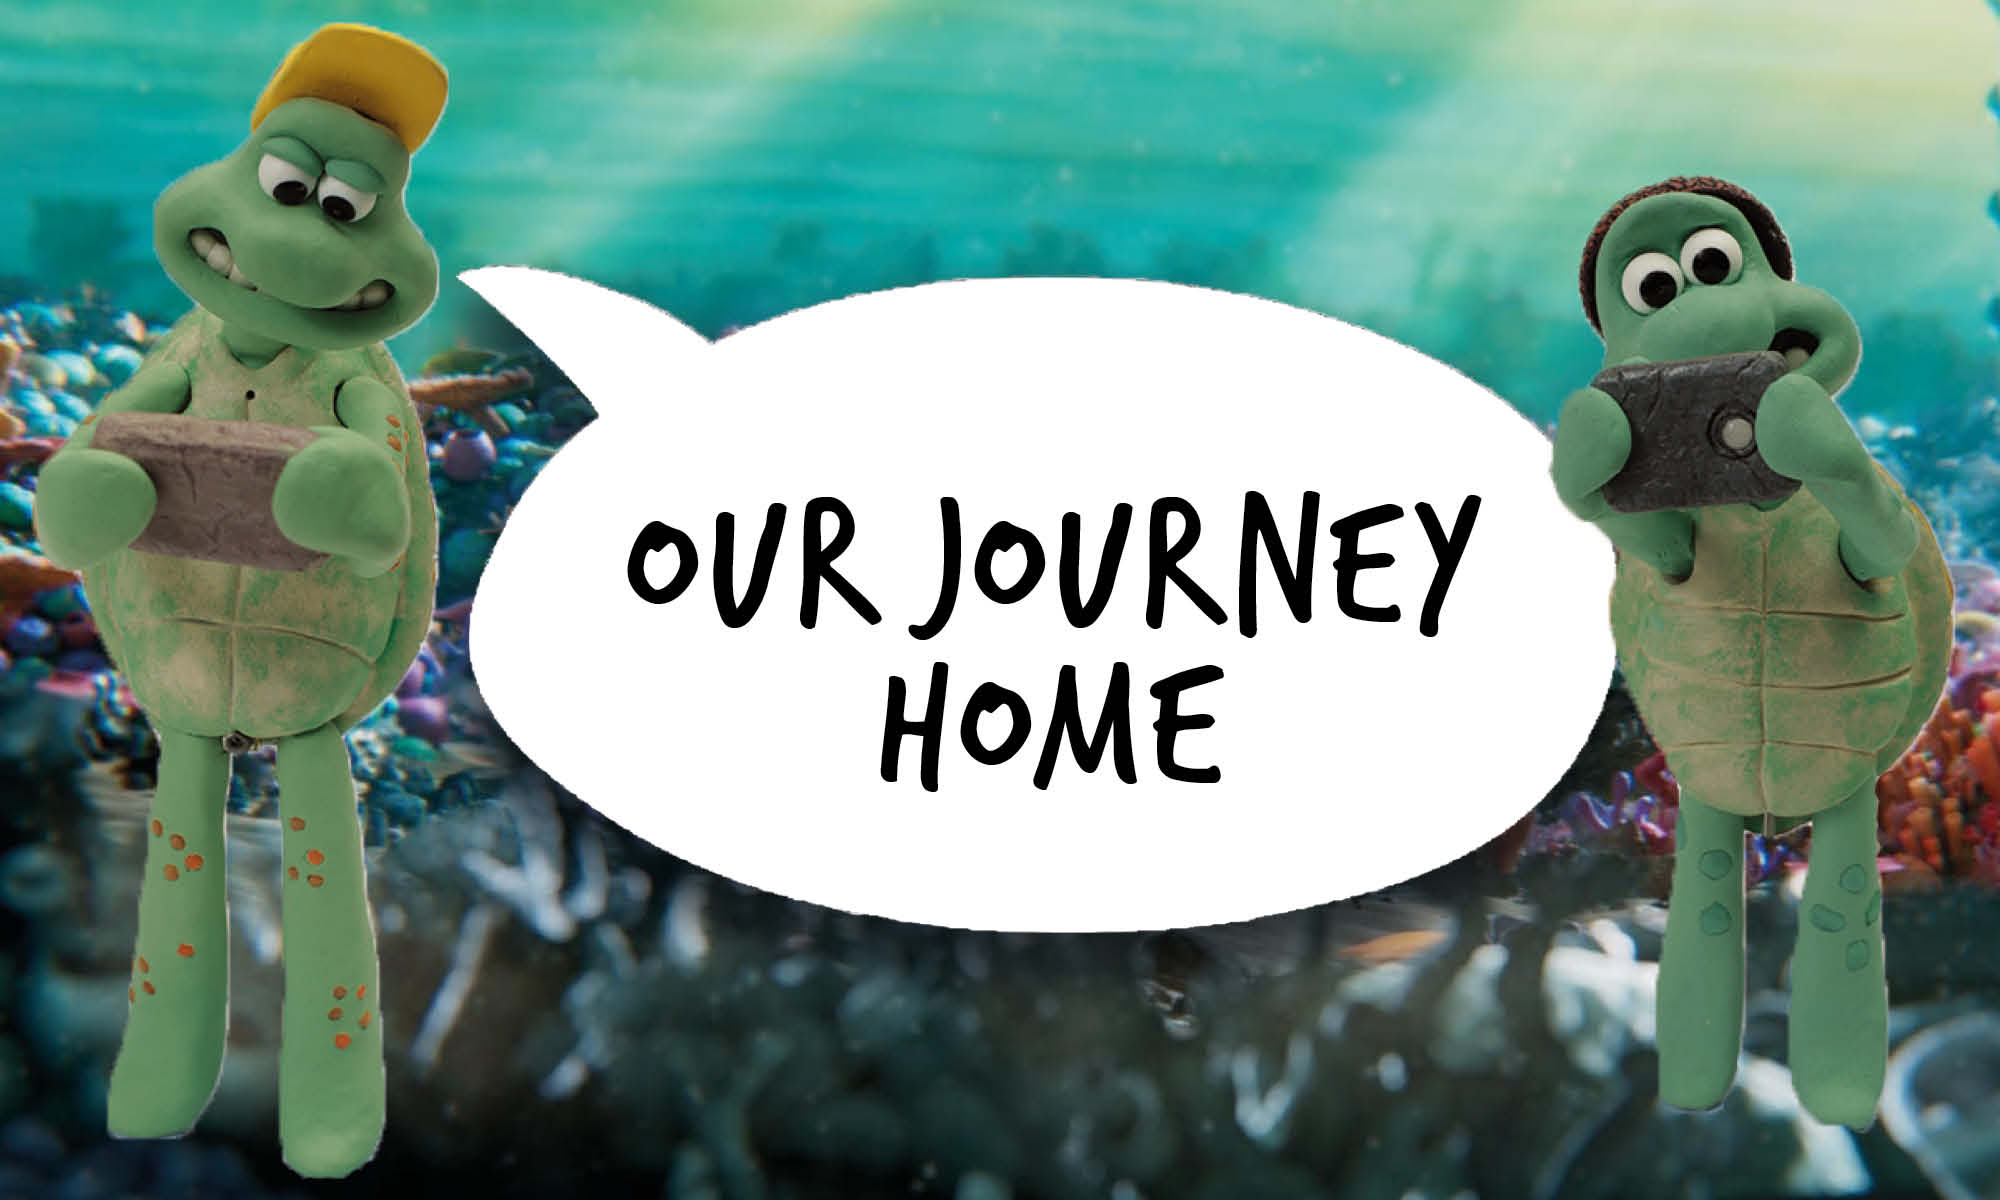 Younger cartoon turtles with a speech bubble that reads 'Our journey home'